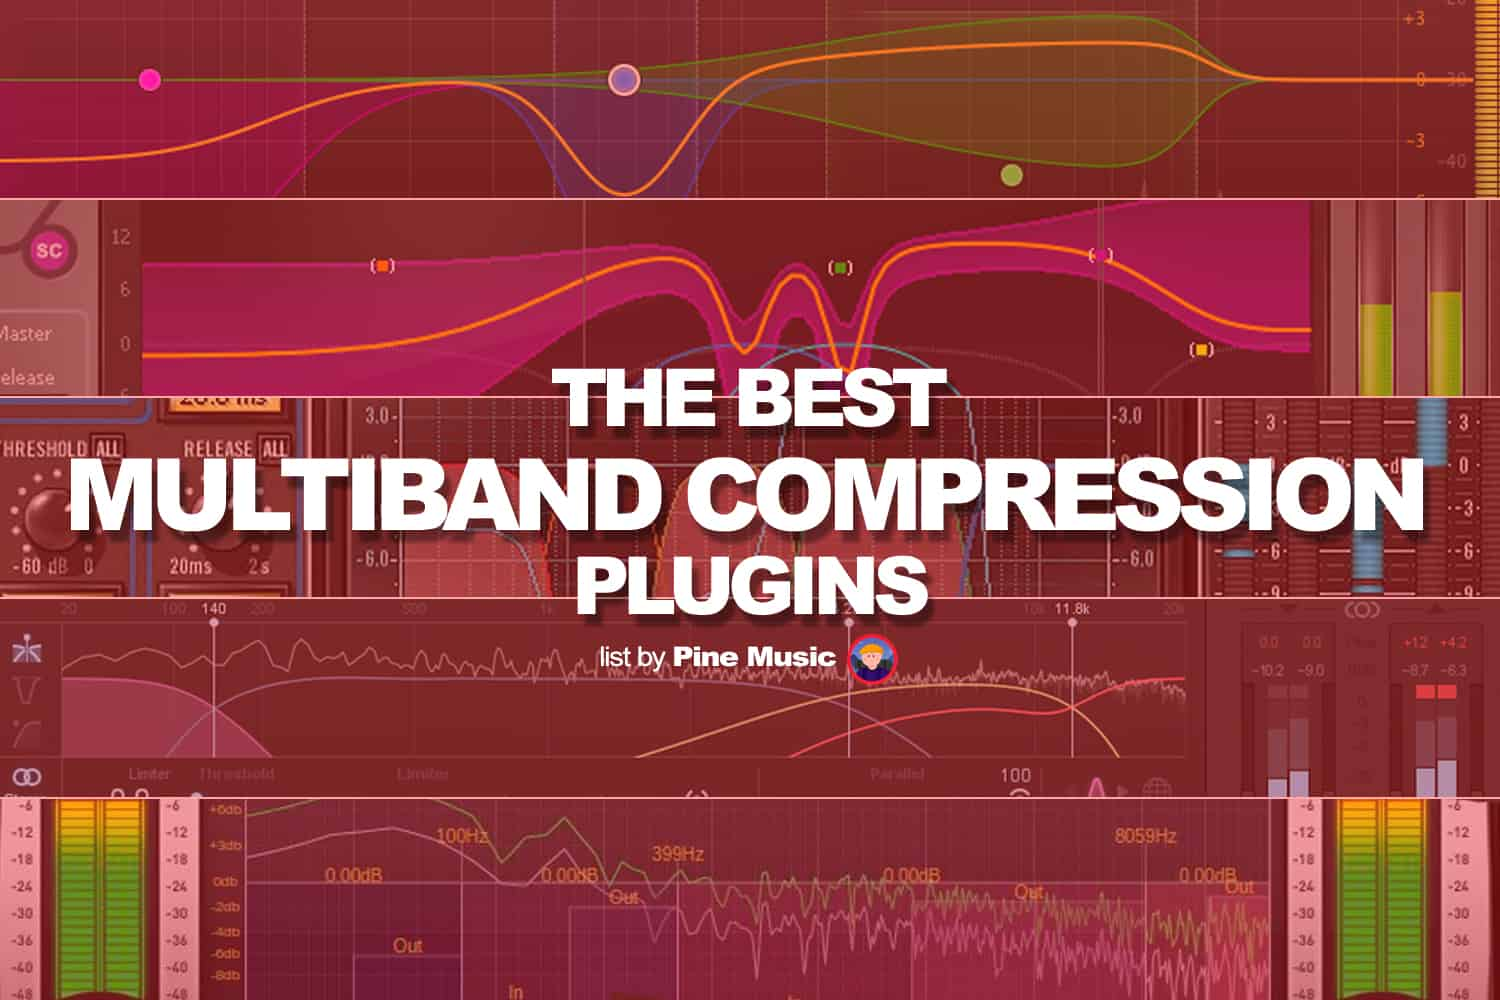 The best multiband compression plugins, listed by Pine Music